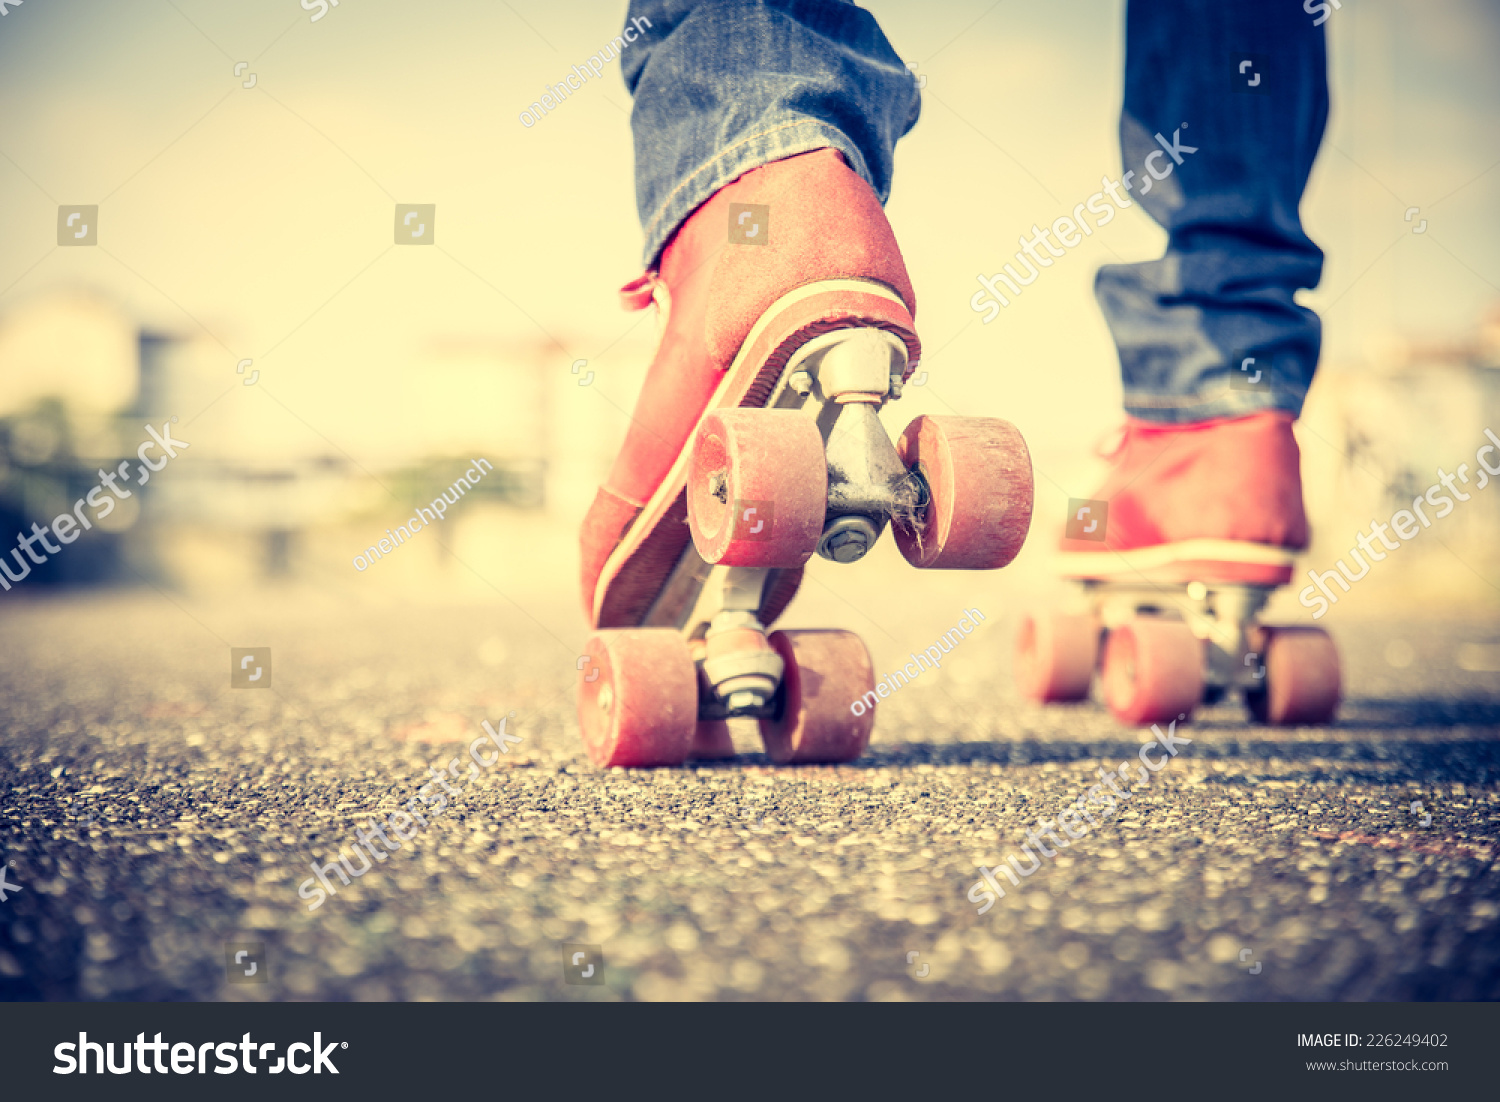 Roller skate shoes in sydney - Close Up On Roller Skate Shoes Concepts Of Youth Sport Lifestyle And 80s